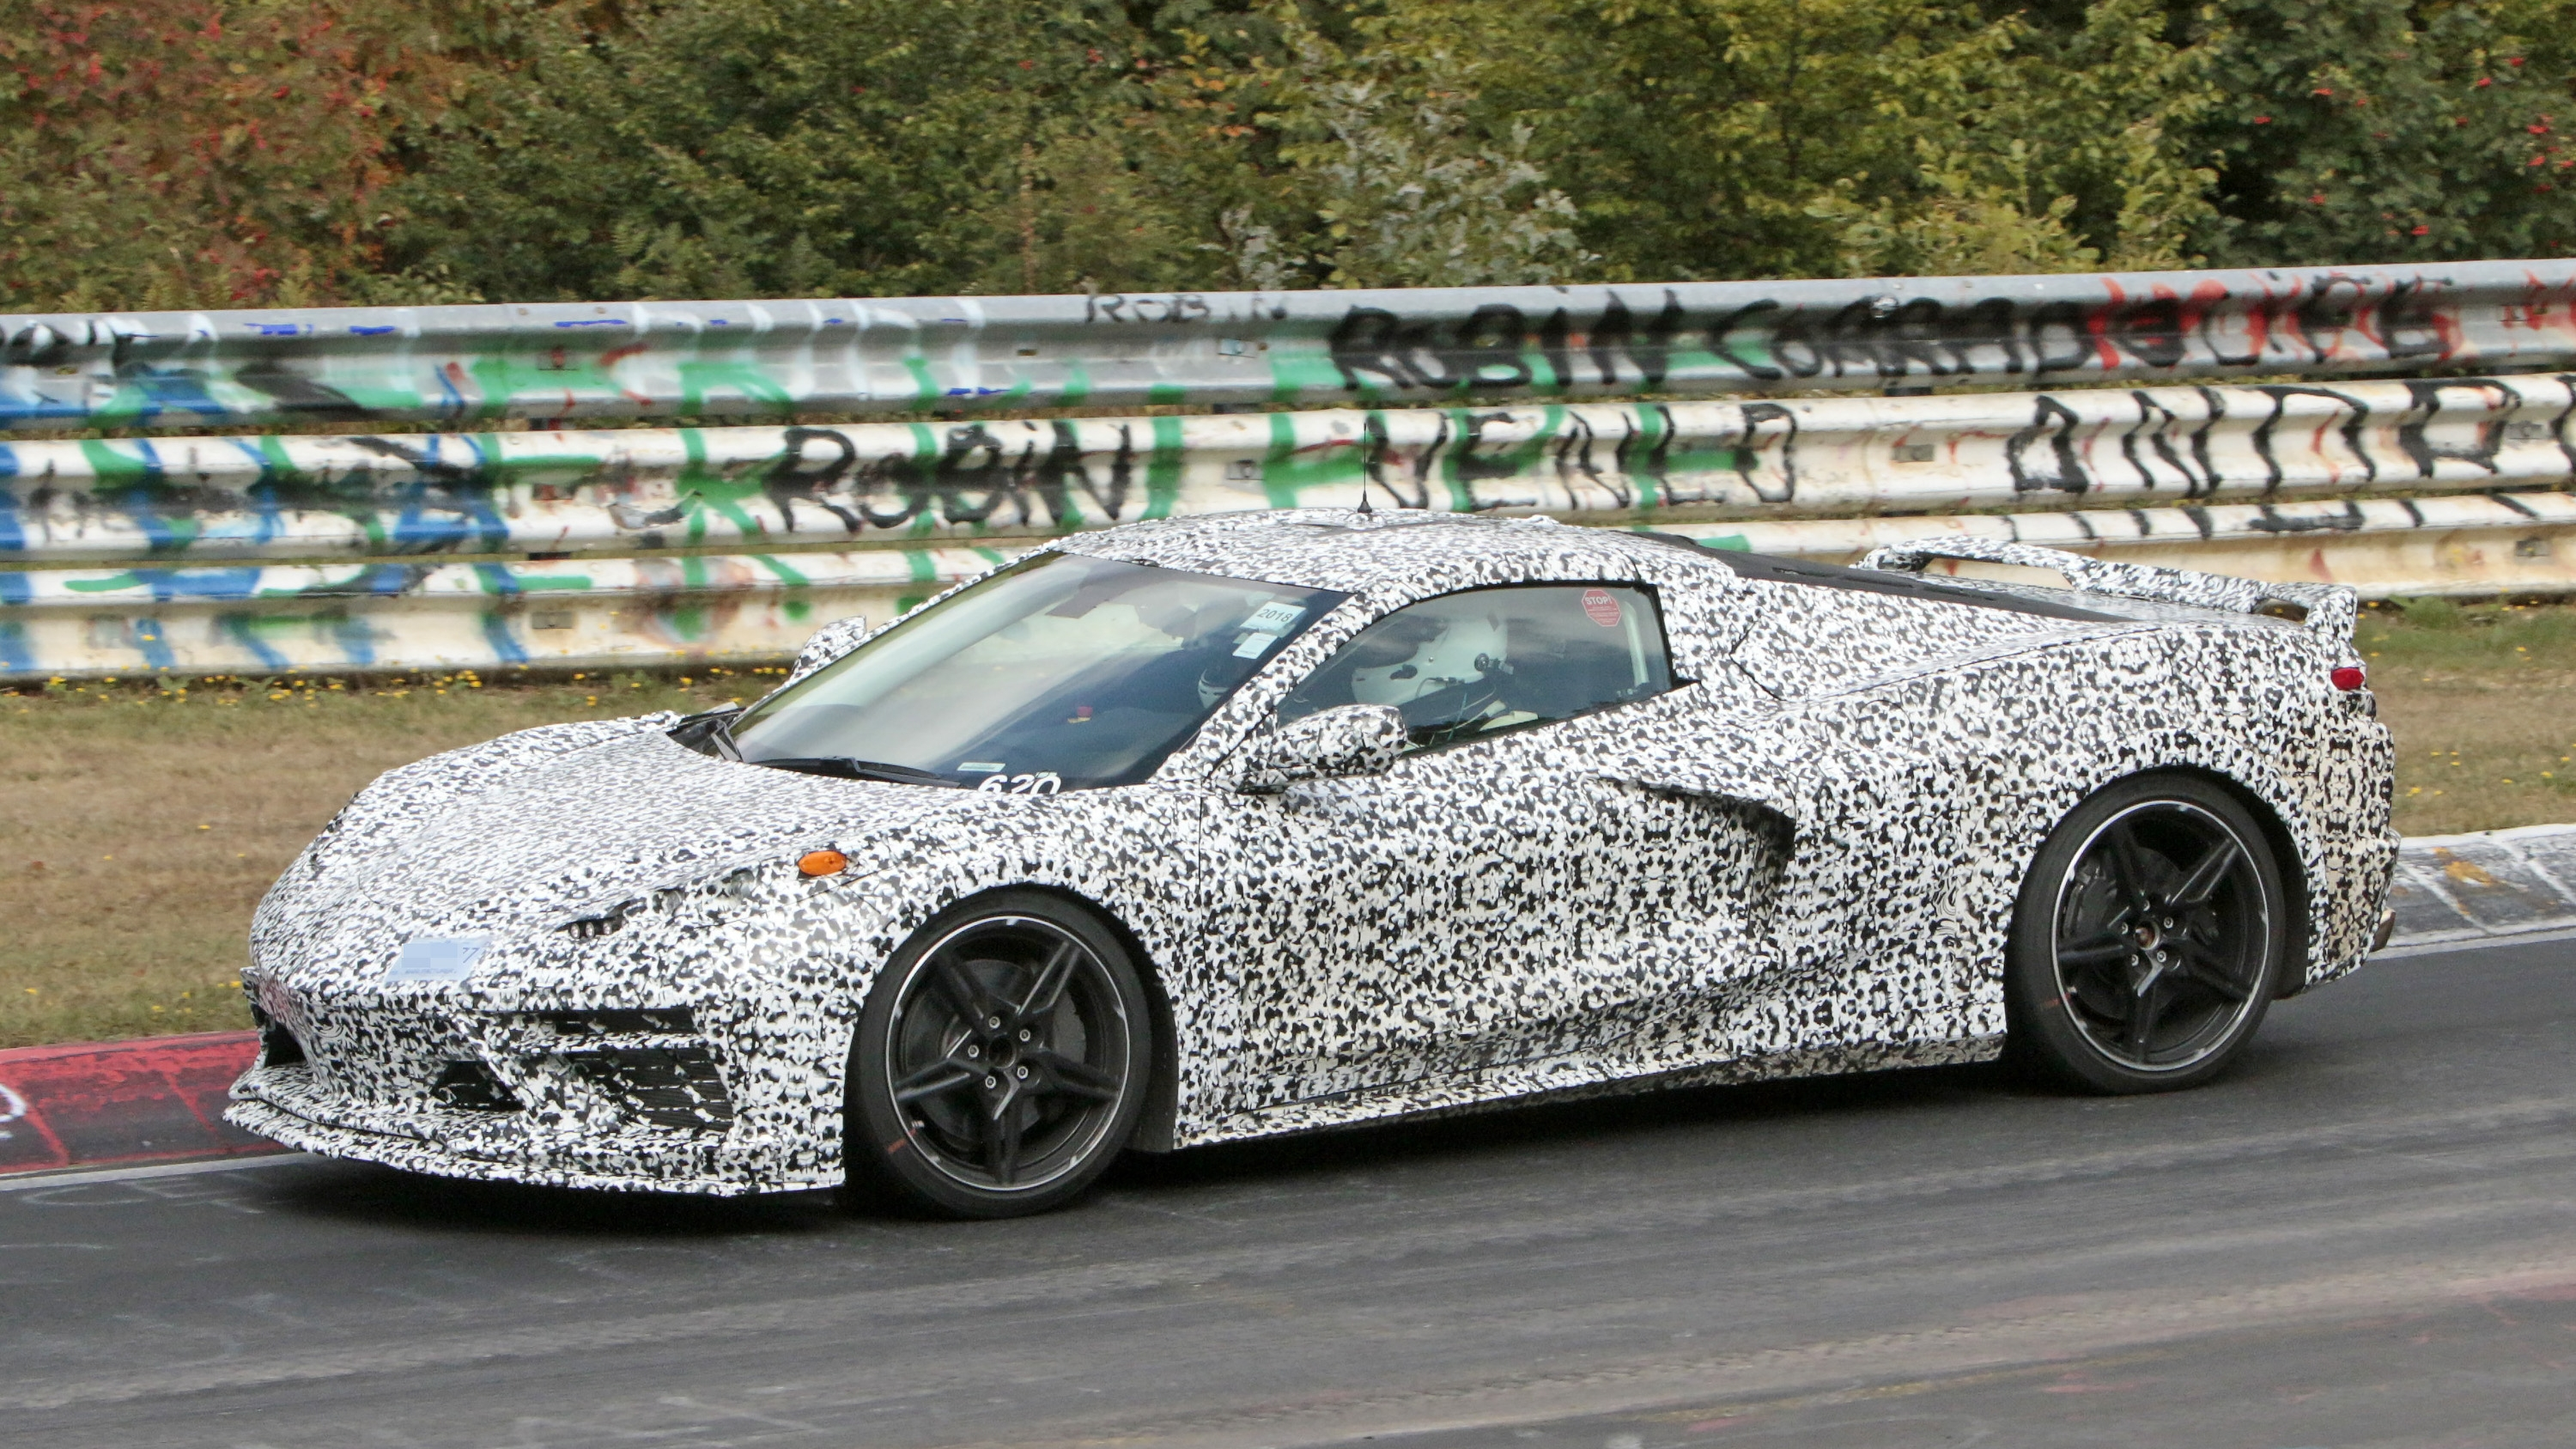 2019 Corvette Zora >> Mid-engined Chevrolet Corvette C8 Caught Testing At Nurburgring | Top Speed